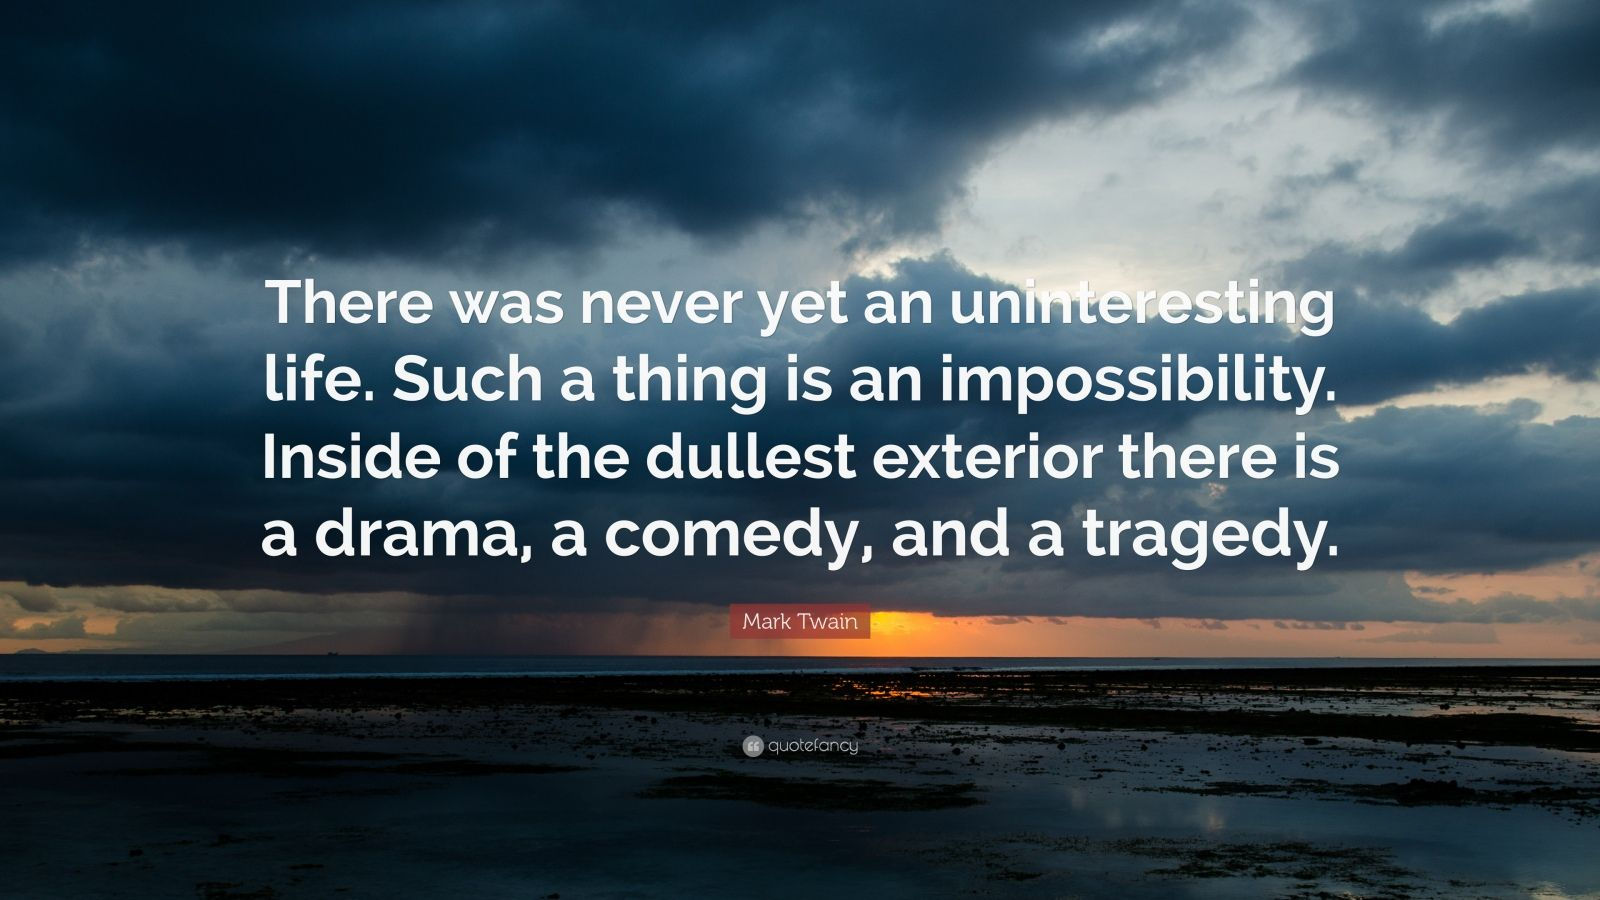 "Mark Twain Quote: ""There was never yet an uninteresting life. Such a thing is an impossibility. Inside of the dullest exterior there is a drama, a comedy, and a tragedy."""